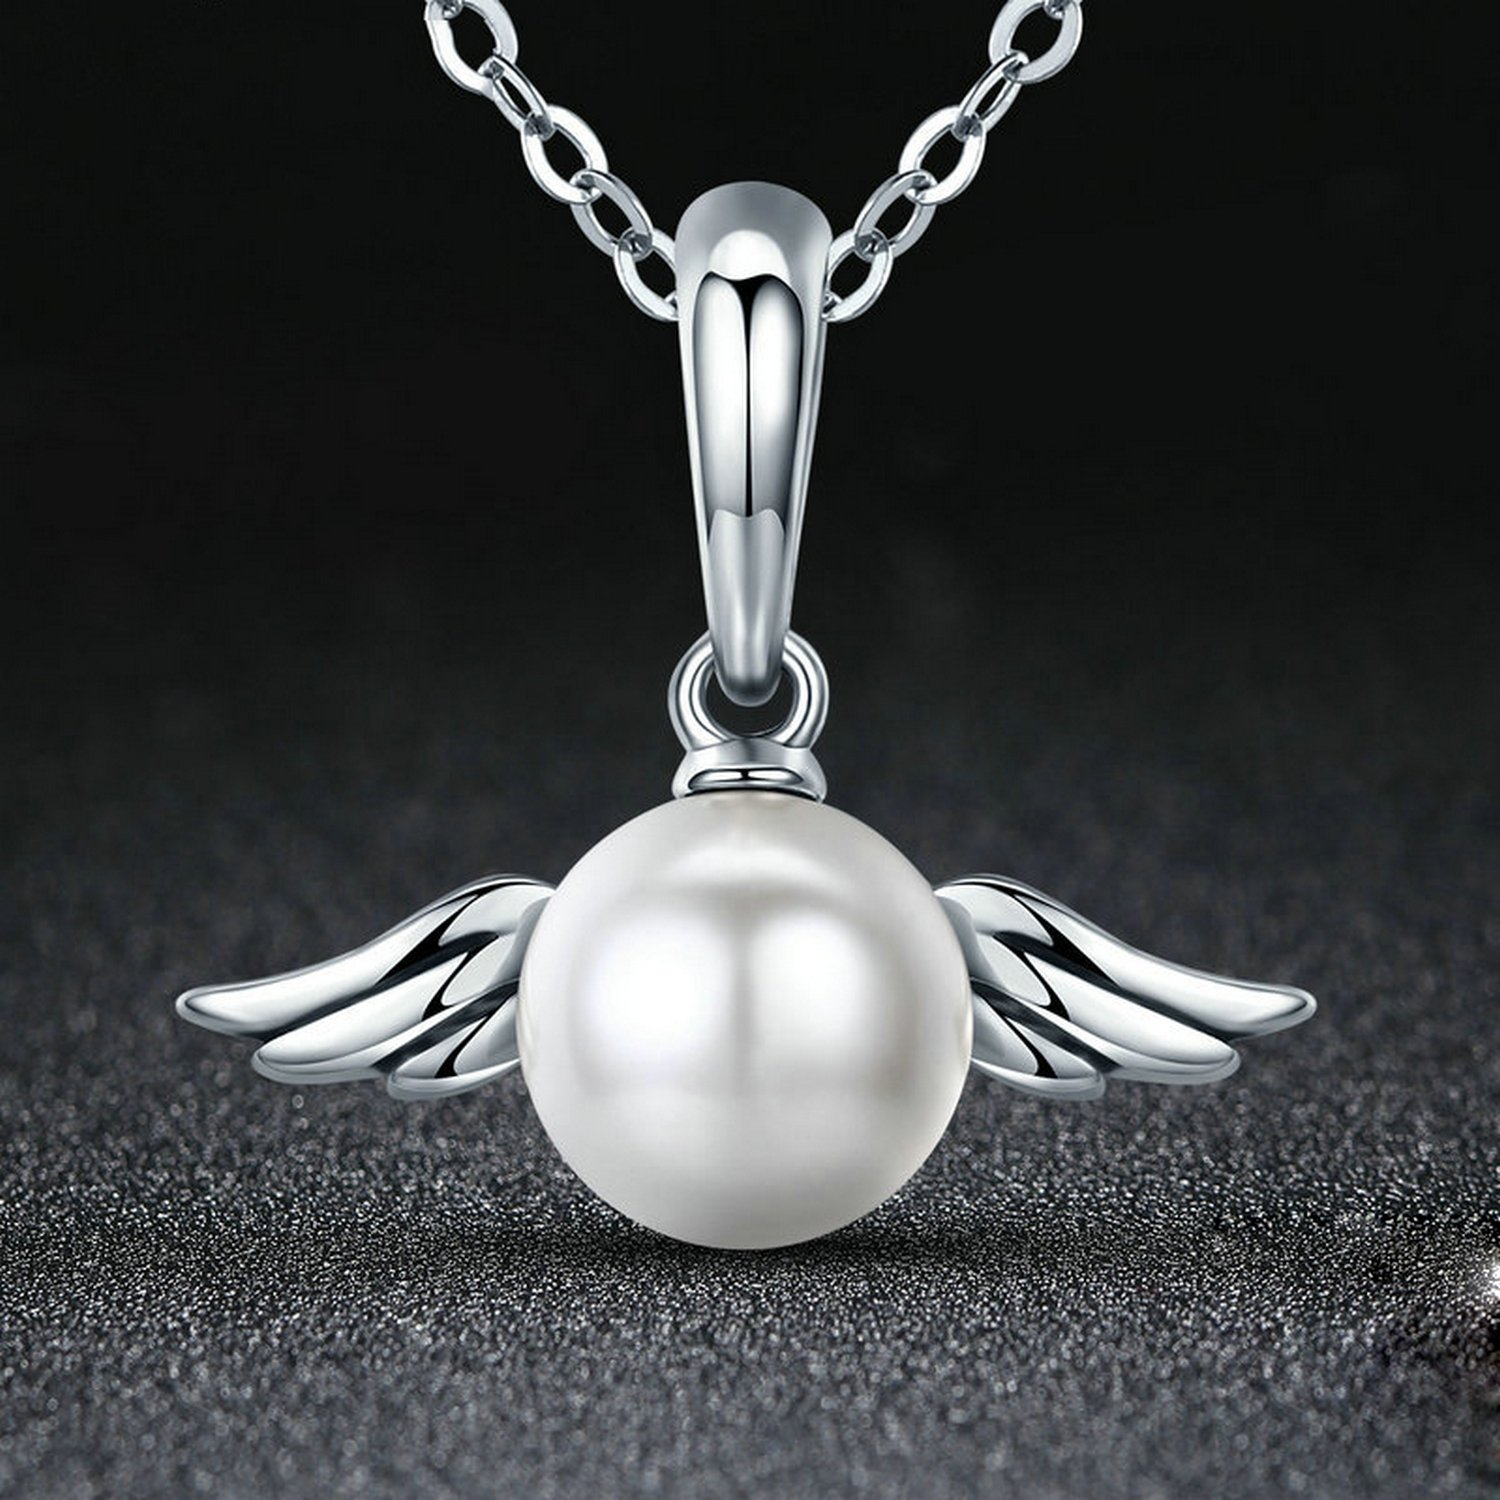 CS-DB Jewelry Silver Angel Feather Wing Chain Charm Pendants Necklaces